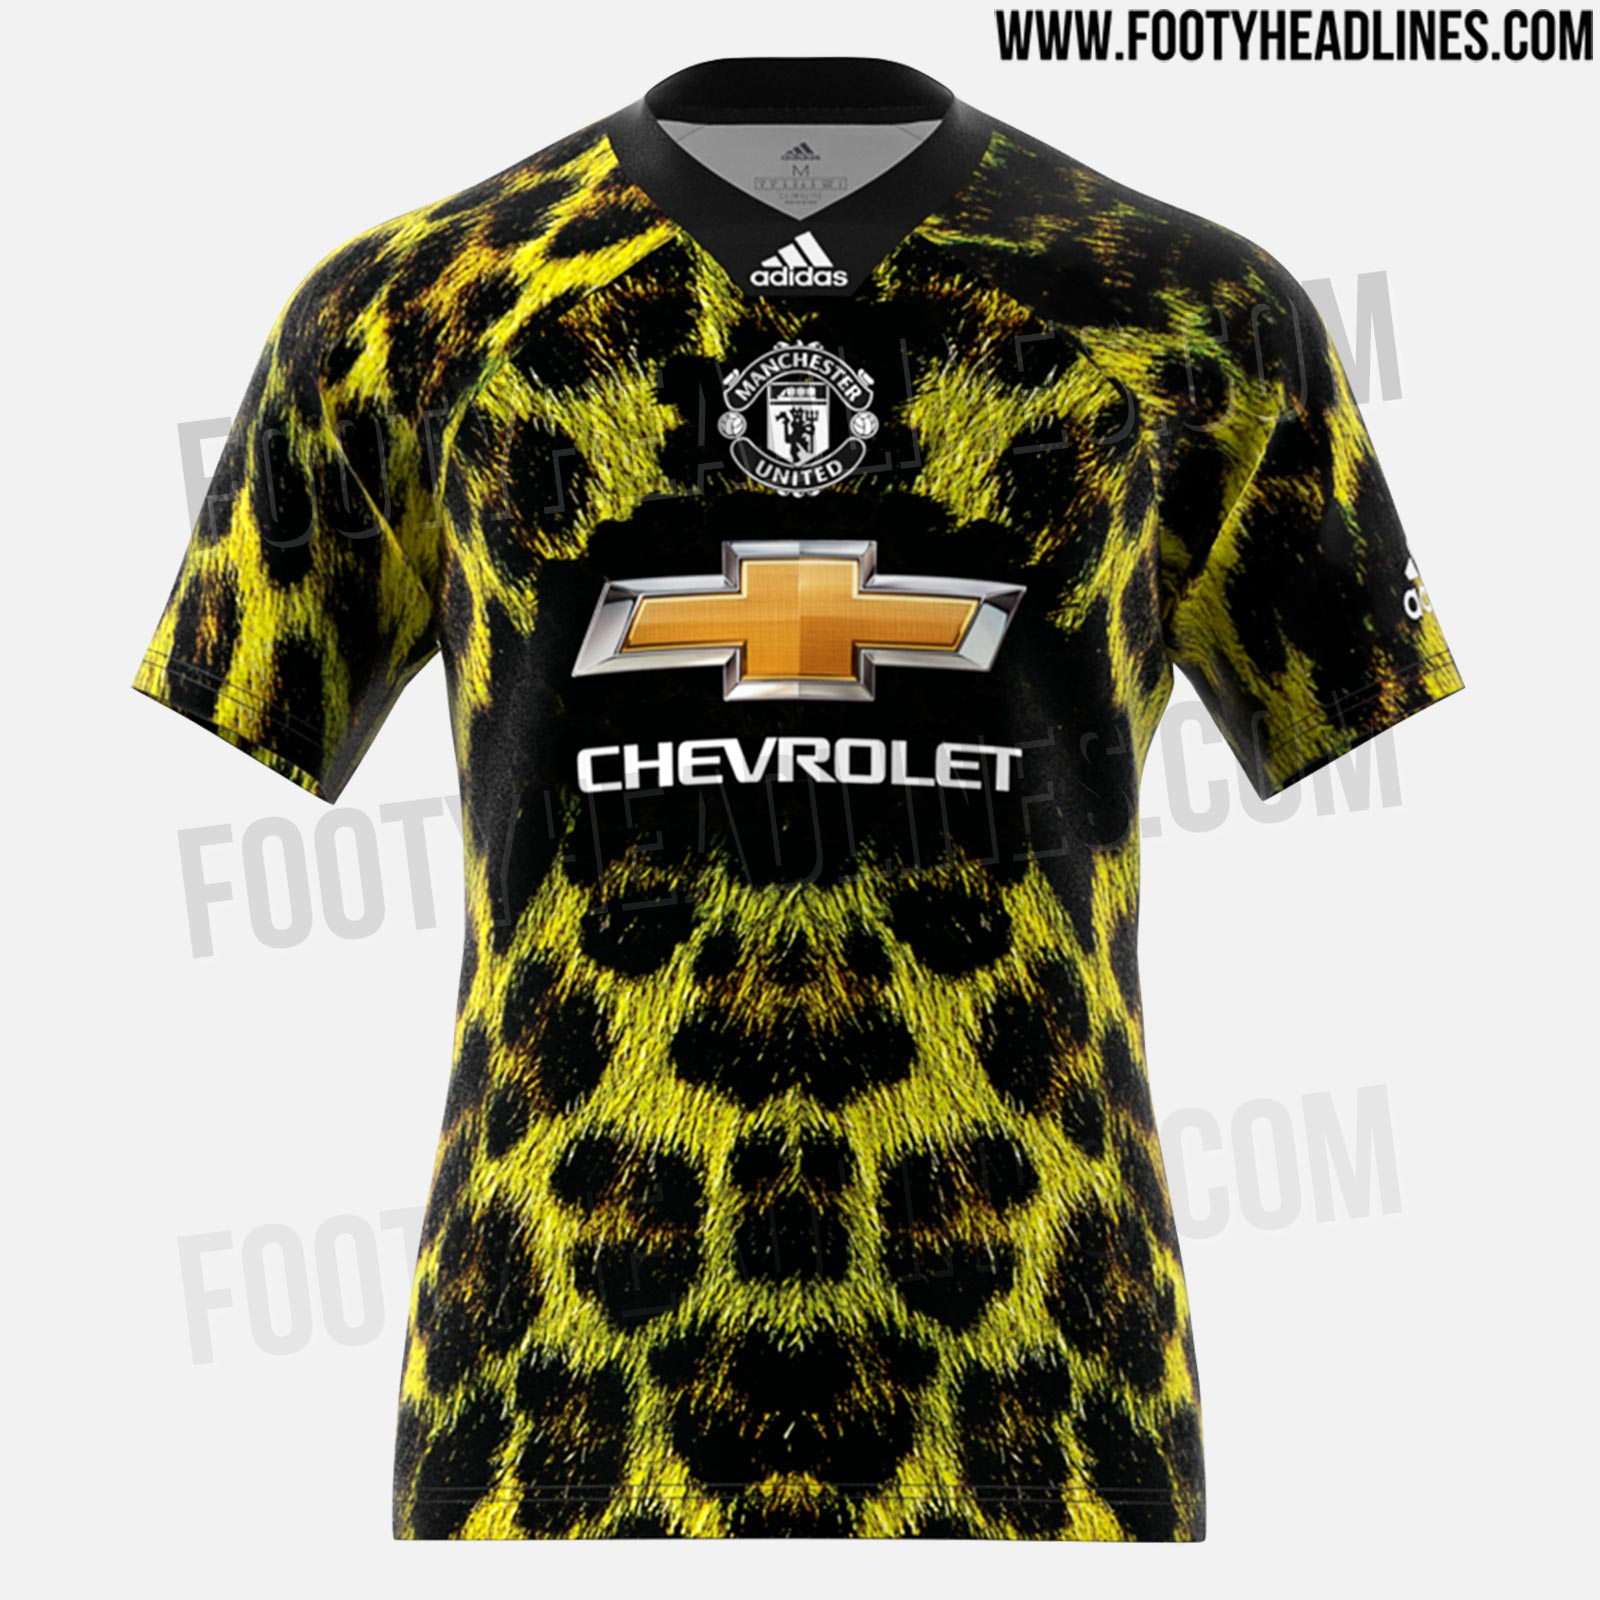 Outrages Adidas X Ea Sports Manchester United Kit 2 Old Trafford Faithful